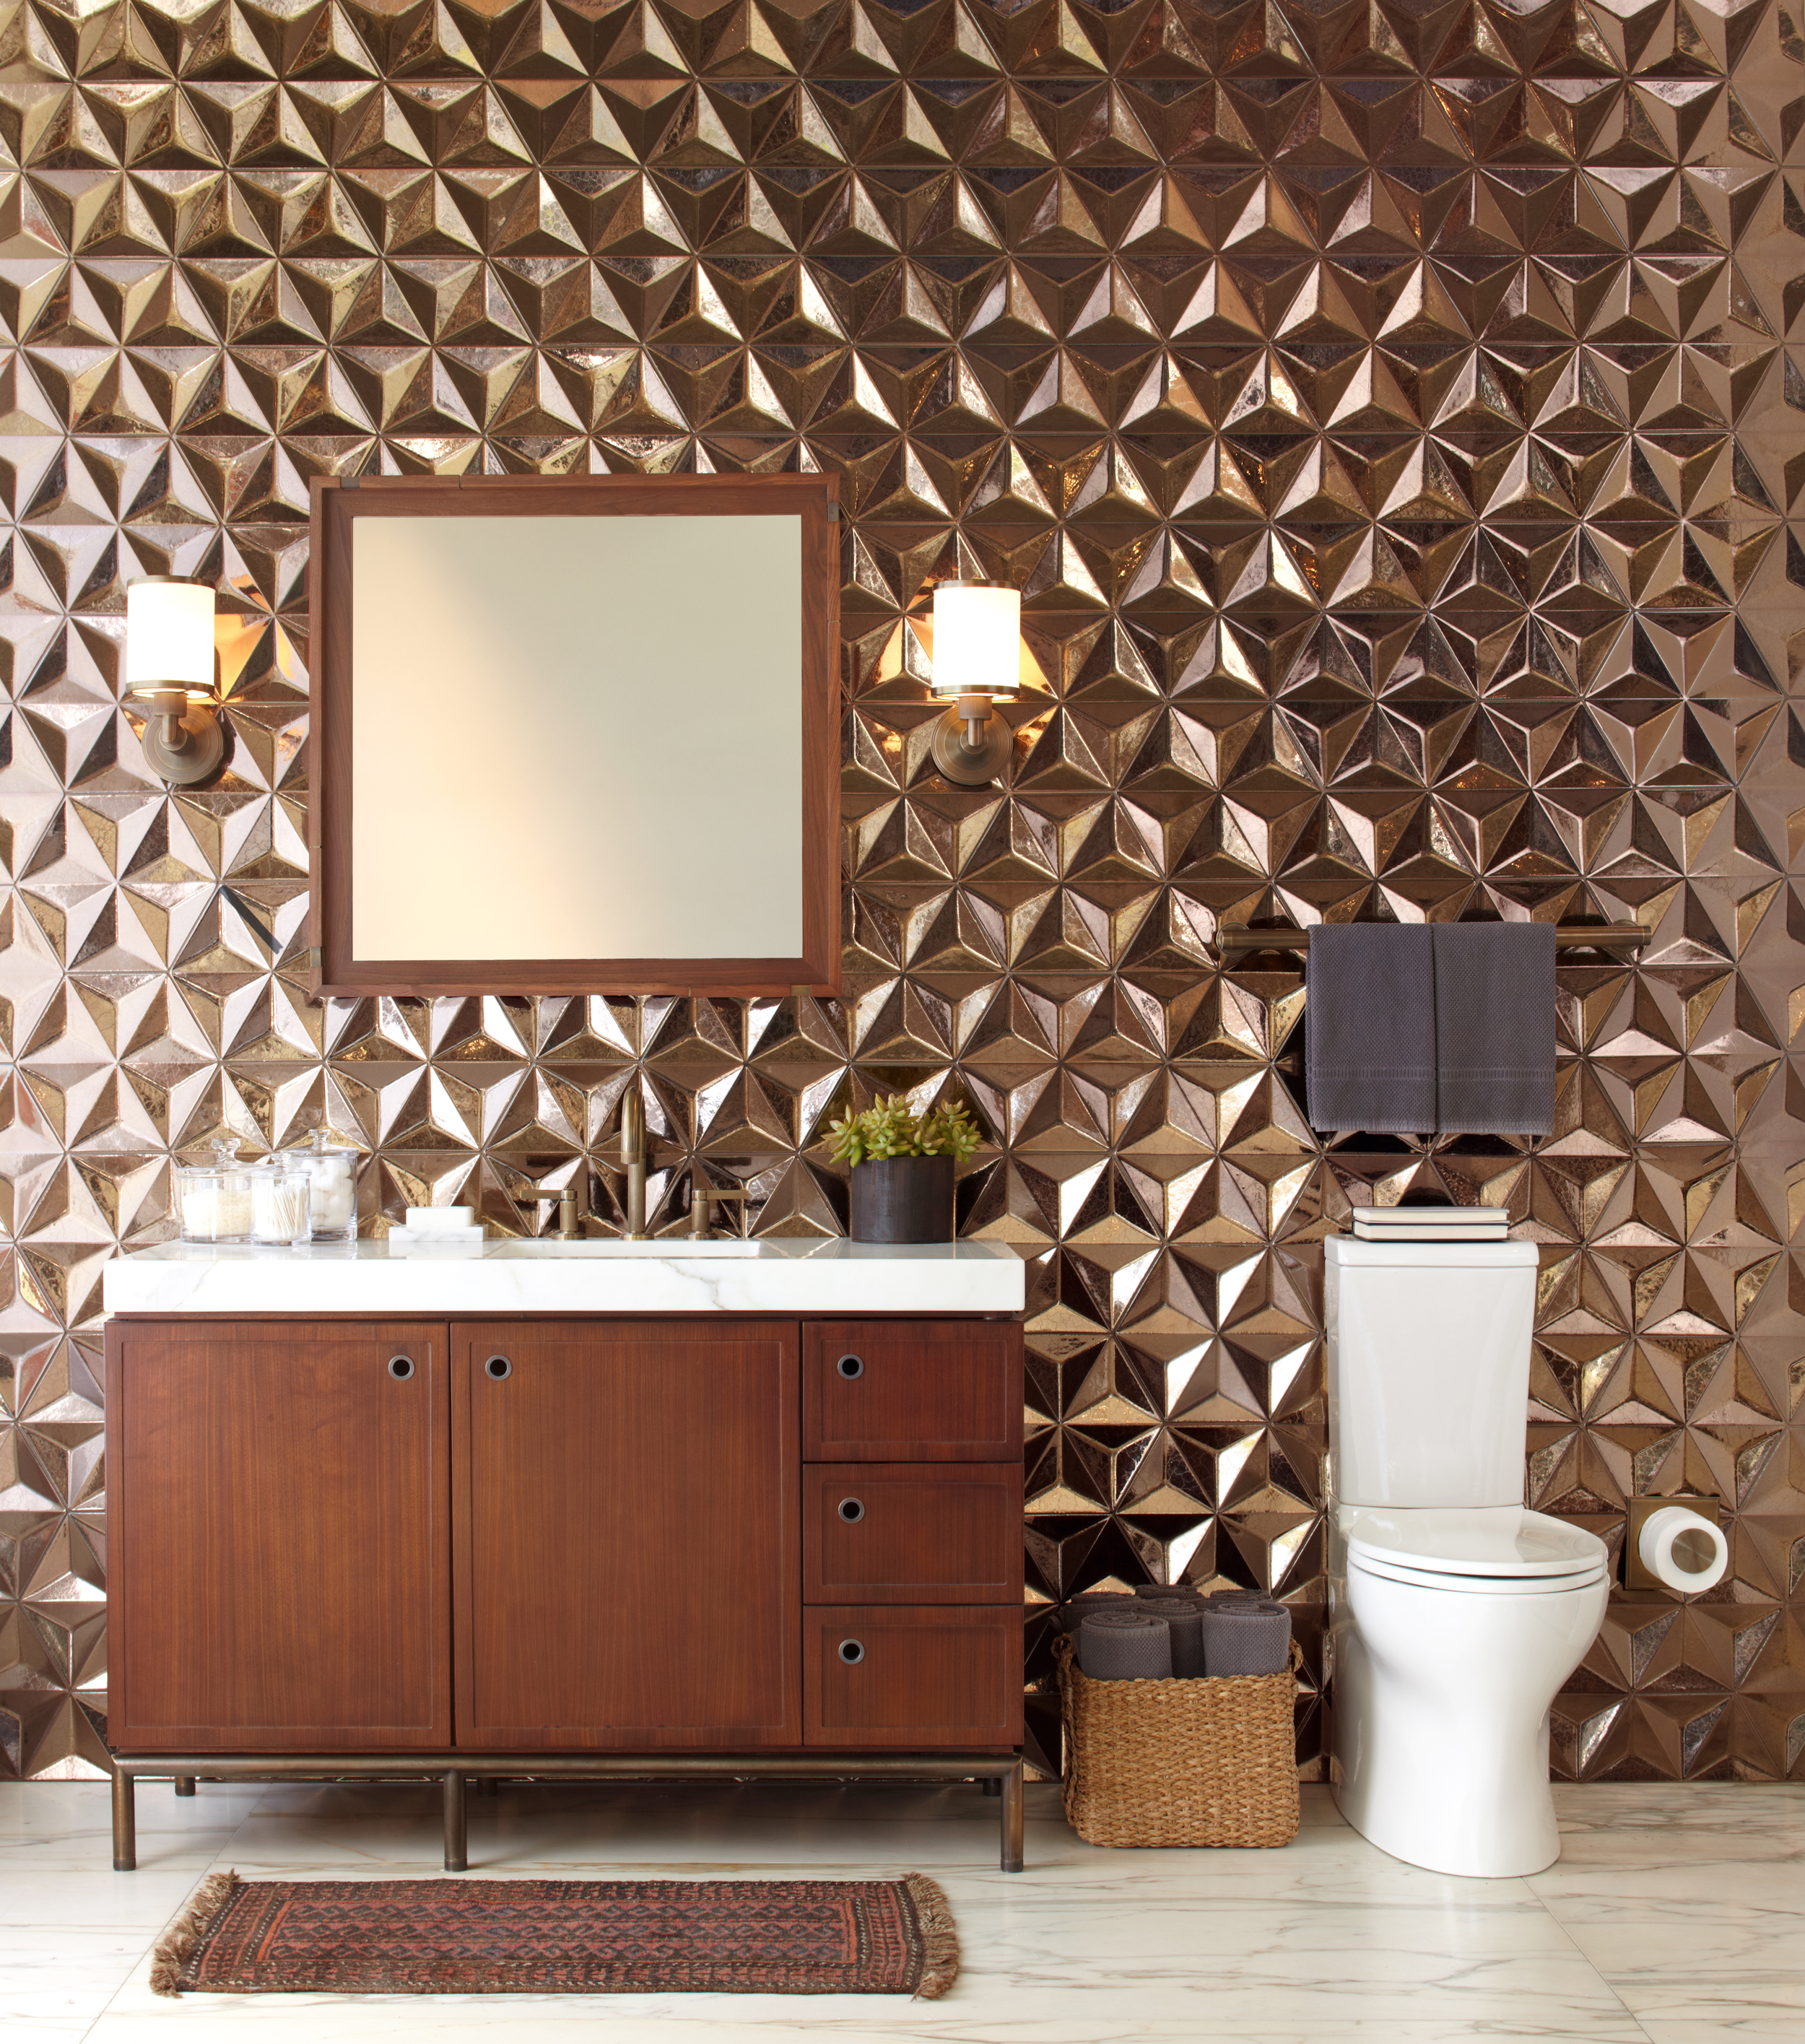 Cool pictures and ideas of gold bathroom tiles 6 7 7c819b970bbf1425fda028c44e09ce65 dailygadgetfo Gallery